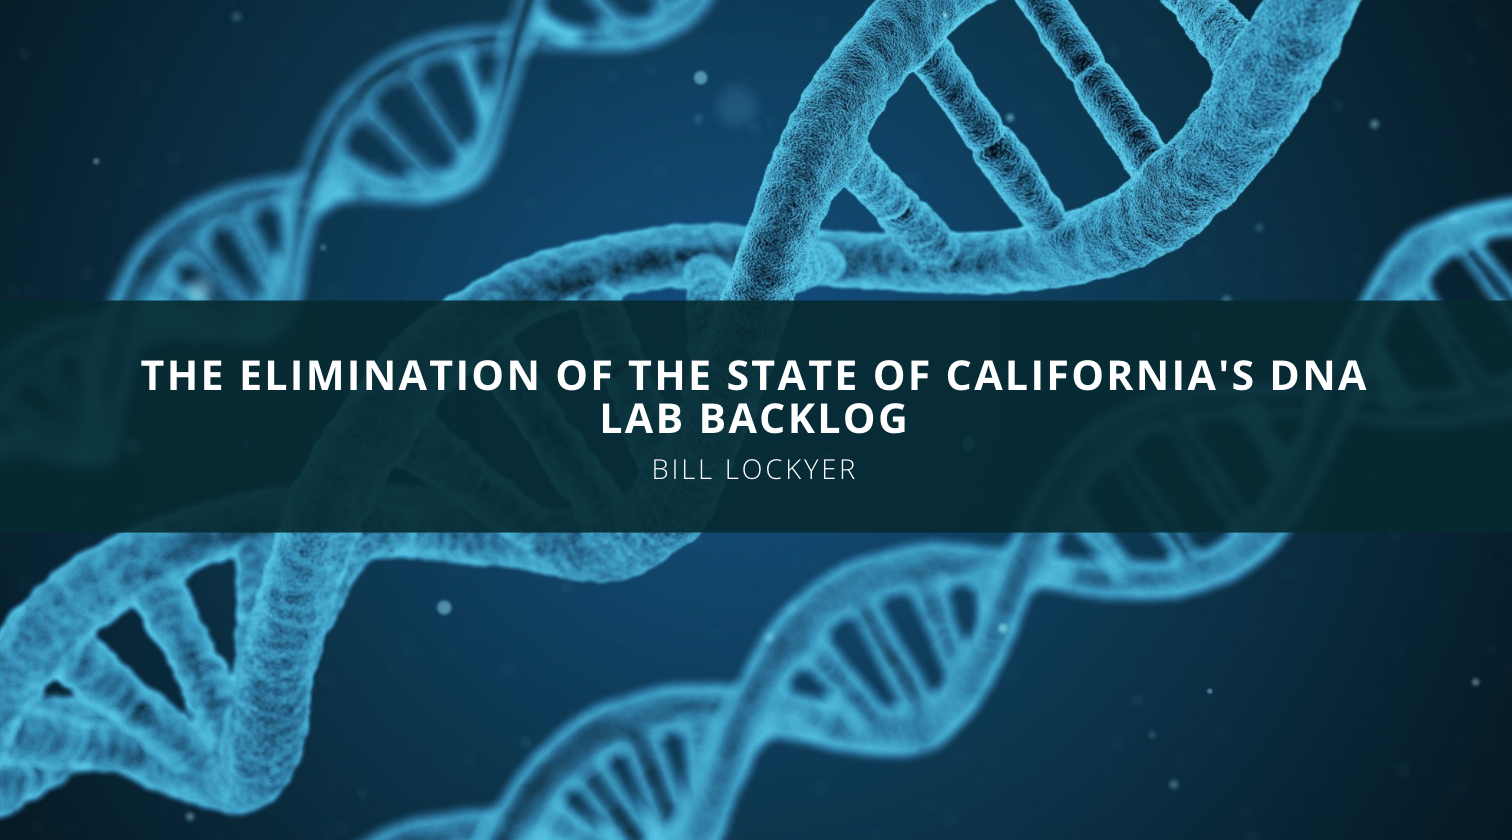 Bill Lockyer Discusses the Elimination of the State of California's DNA Lab Backlog